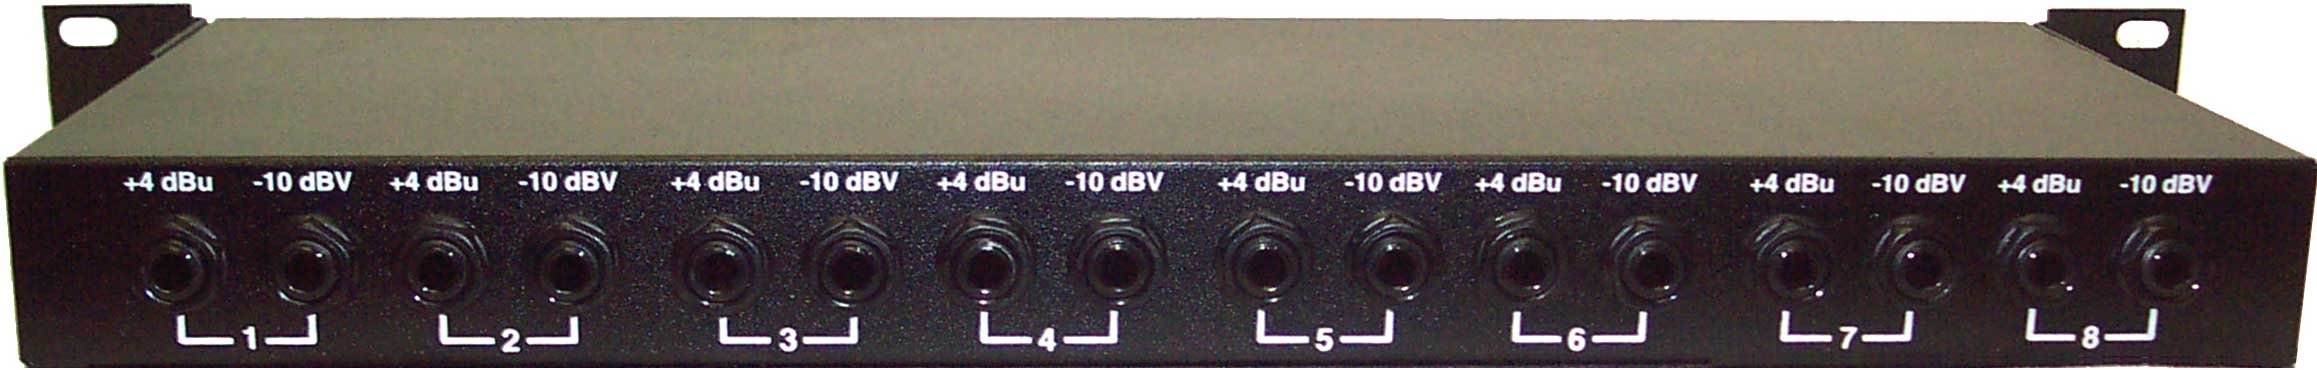 "8-channel Line Level Shifter, 1/4"" Connectors"